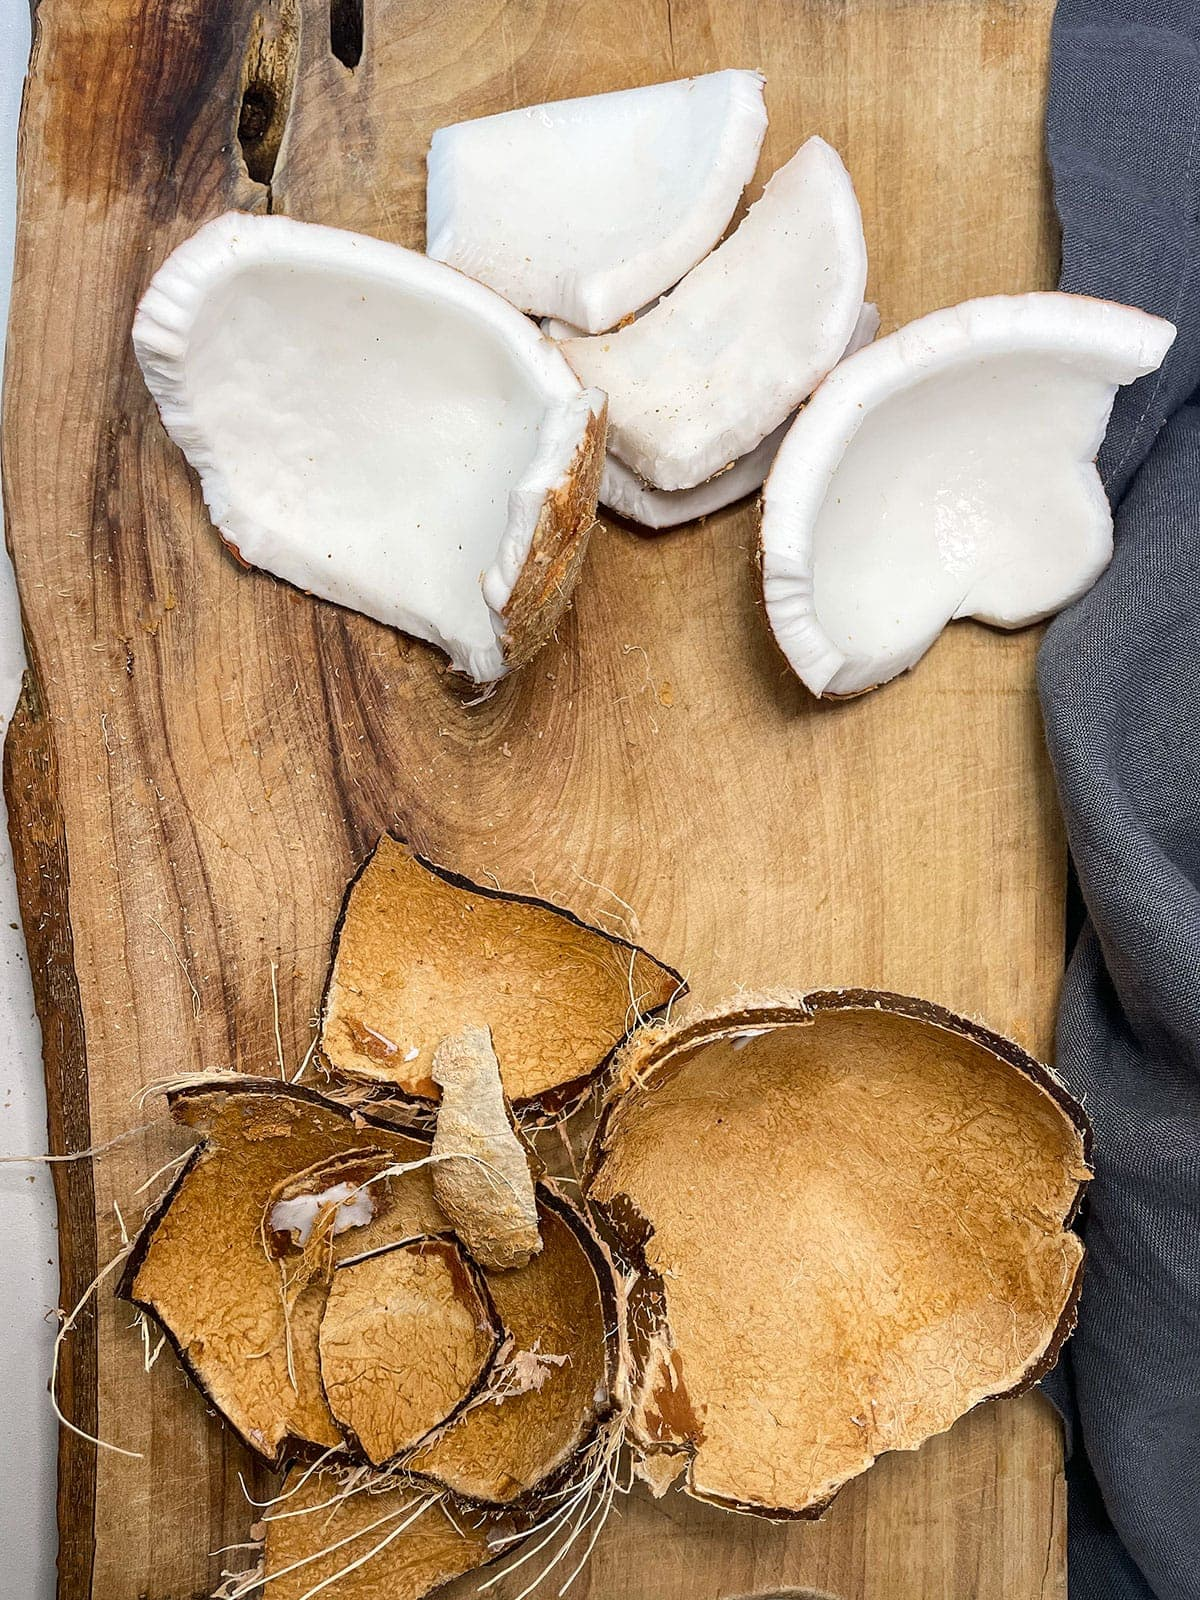 removing coconut flesh from coconut shell on a wooden cutting board